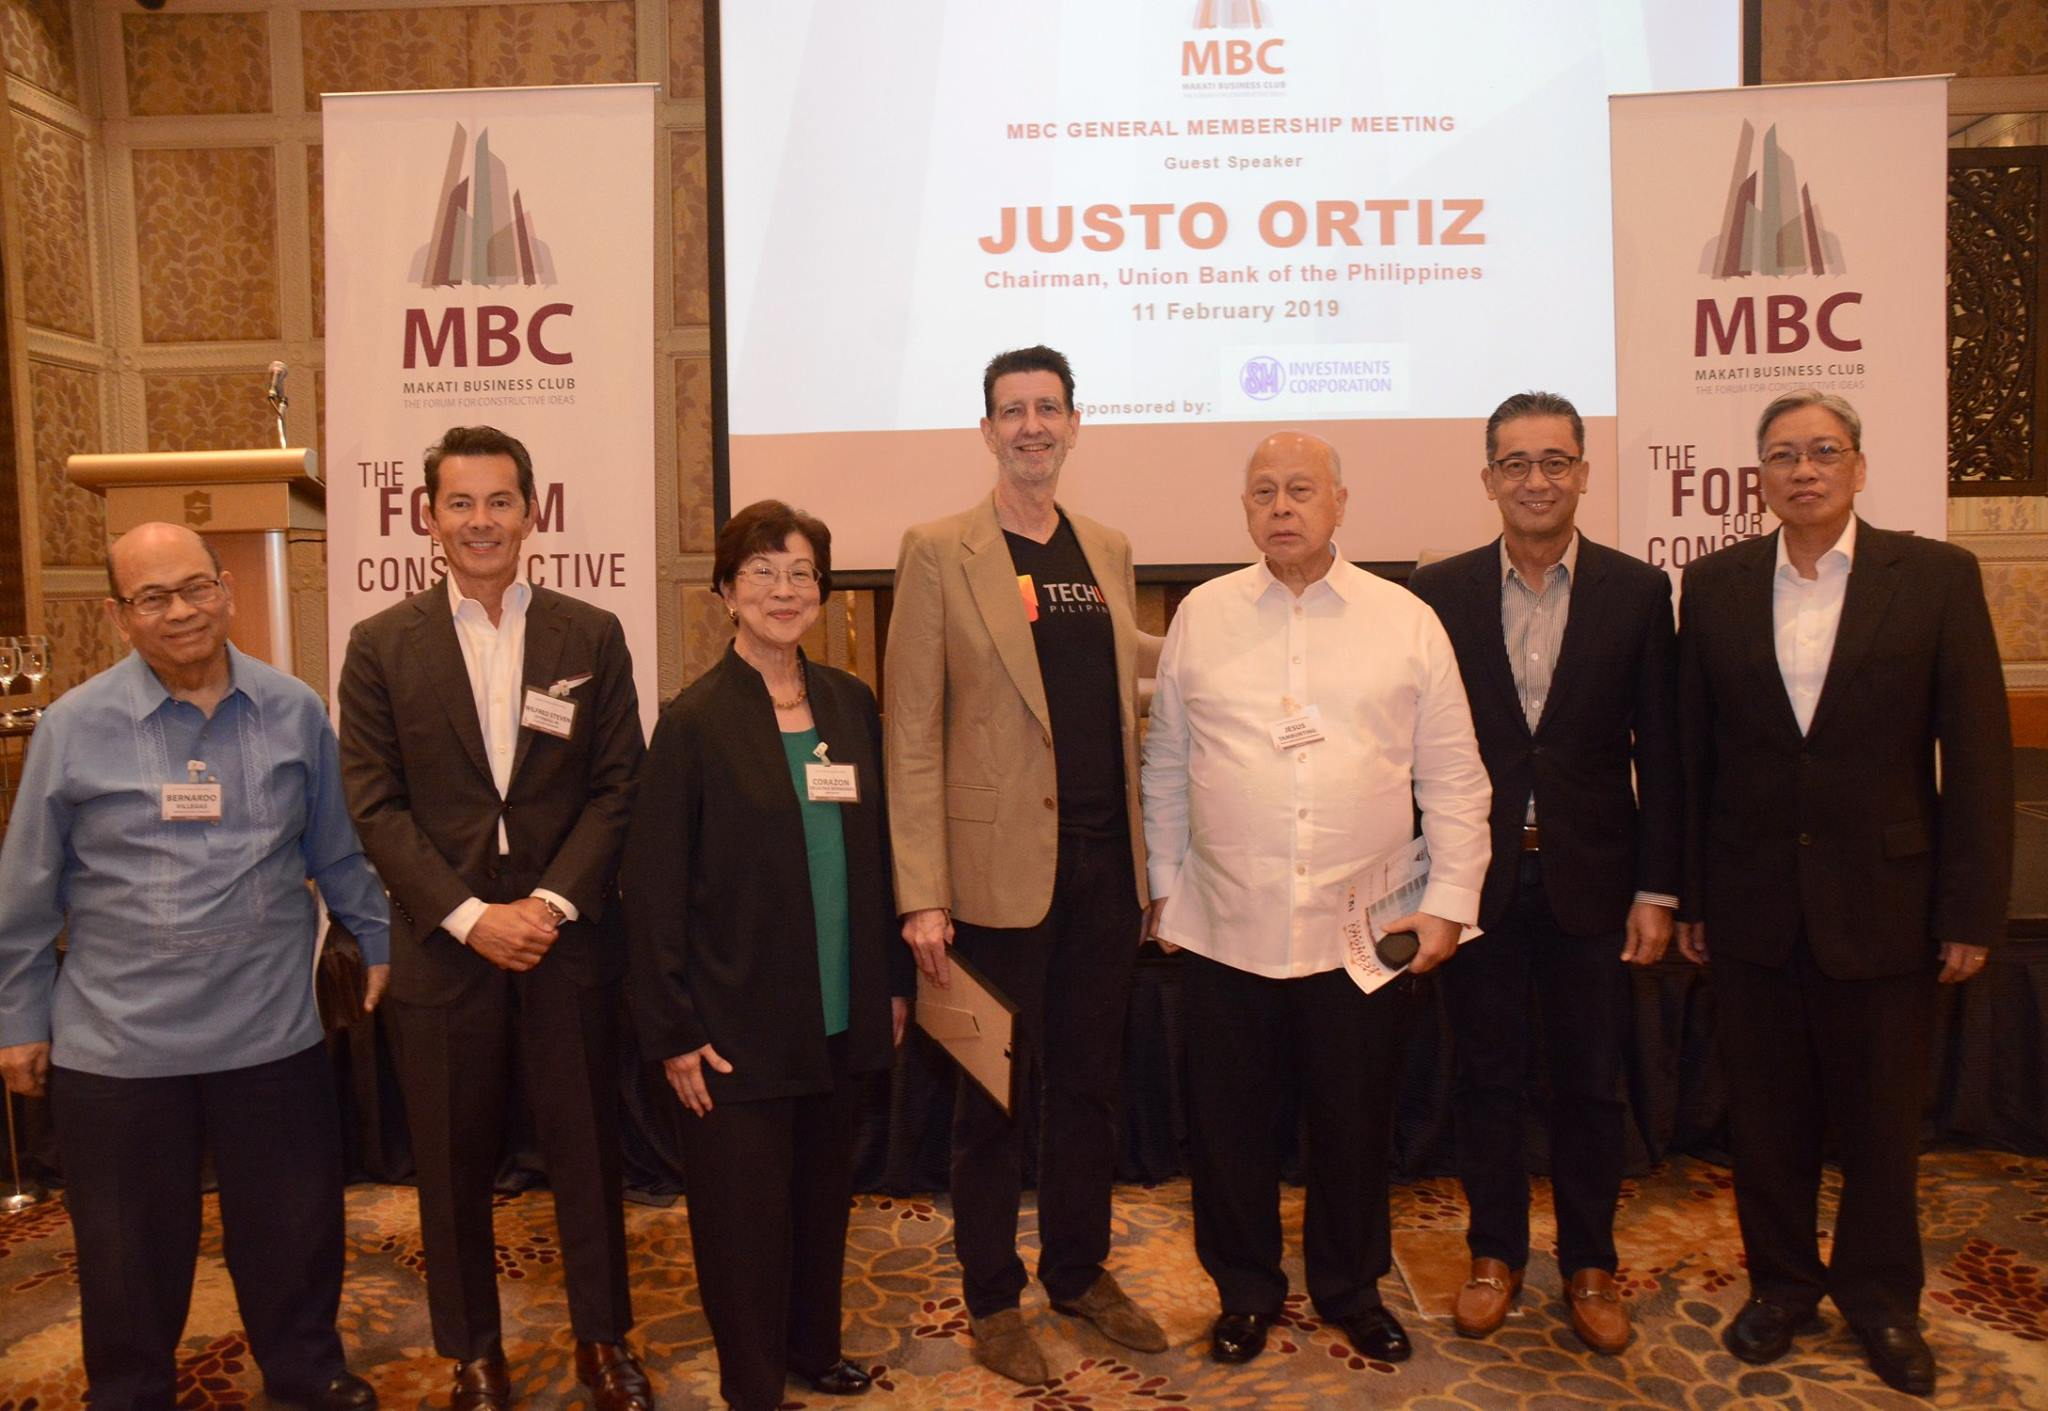 General Membership Meeting with Justo Ortiz on Transforming Philippine Business